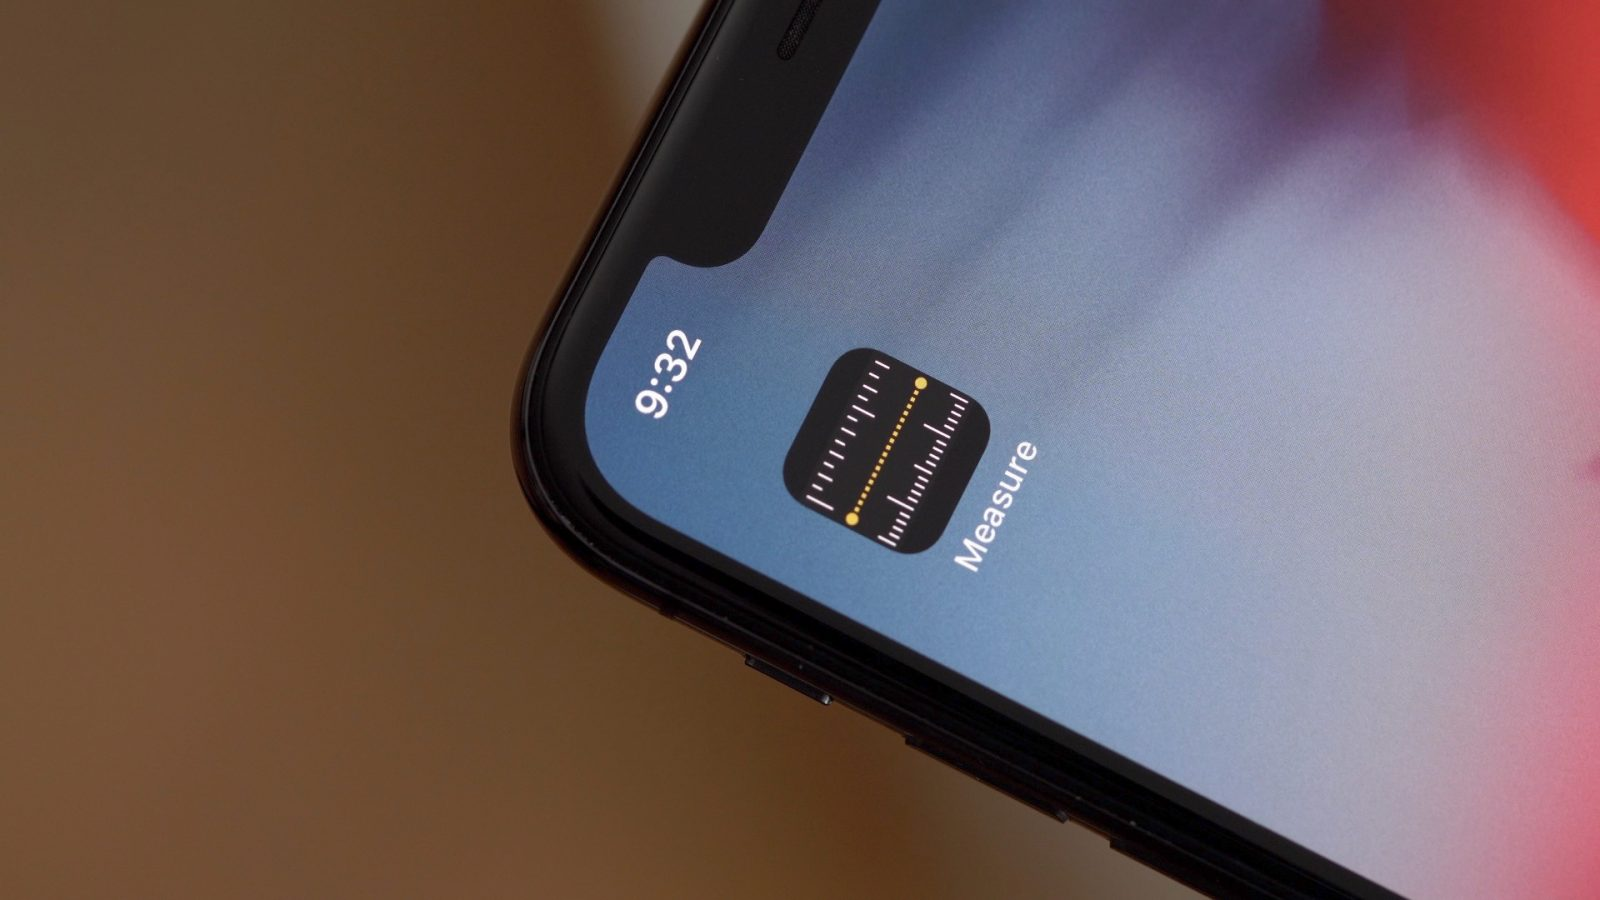 measure ios 12